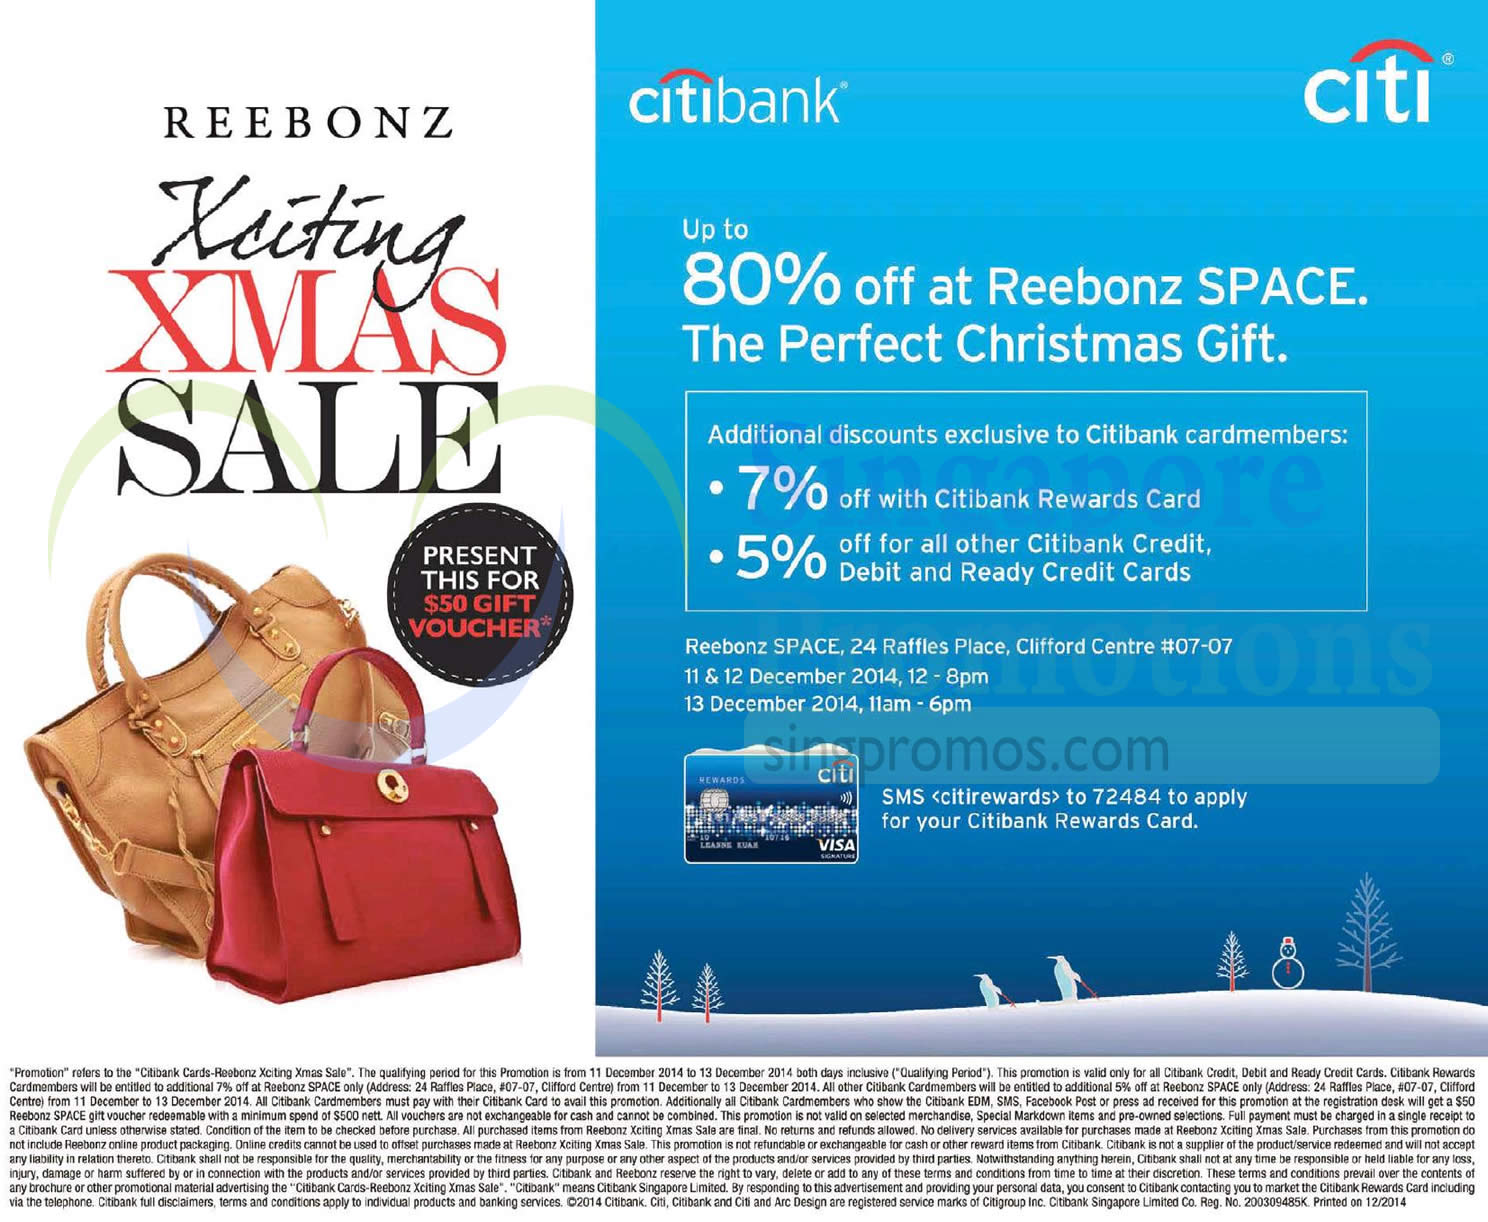 11 Dec Citibank Terms and Conditions